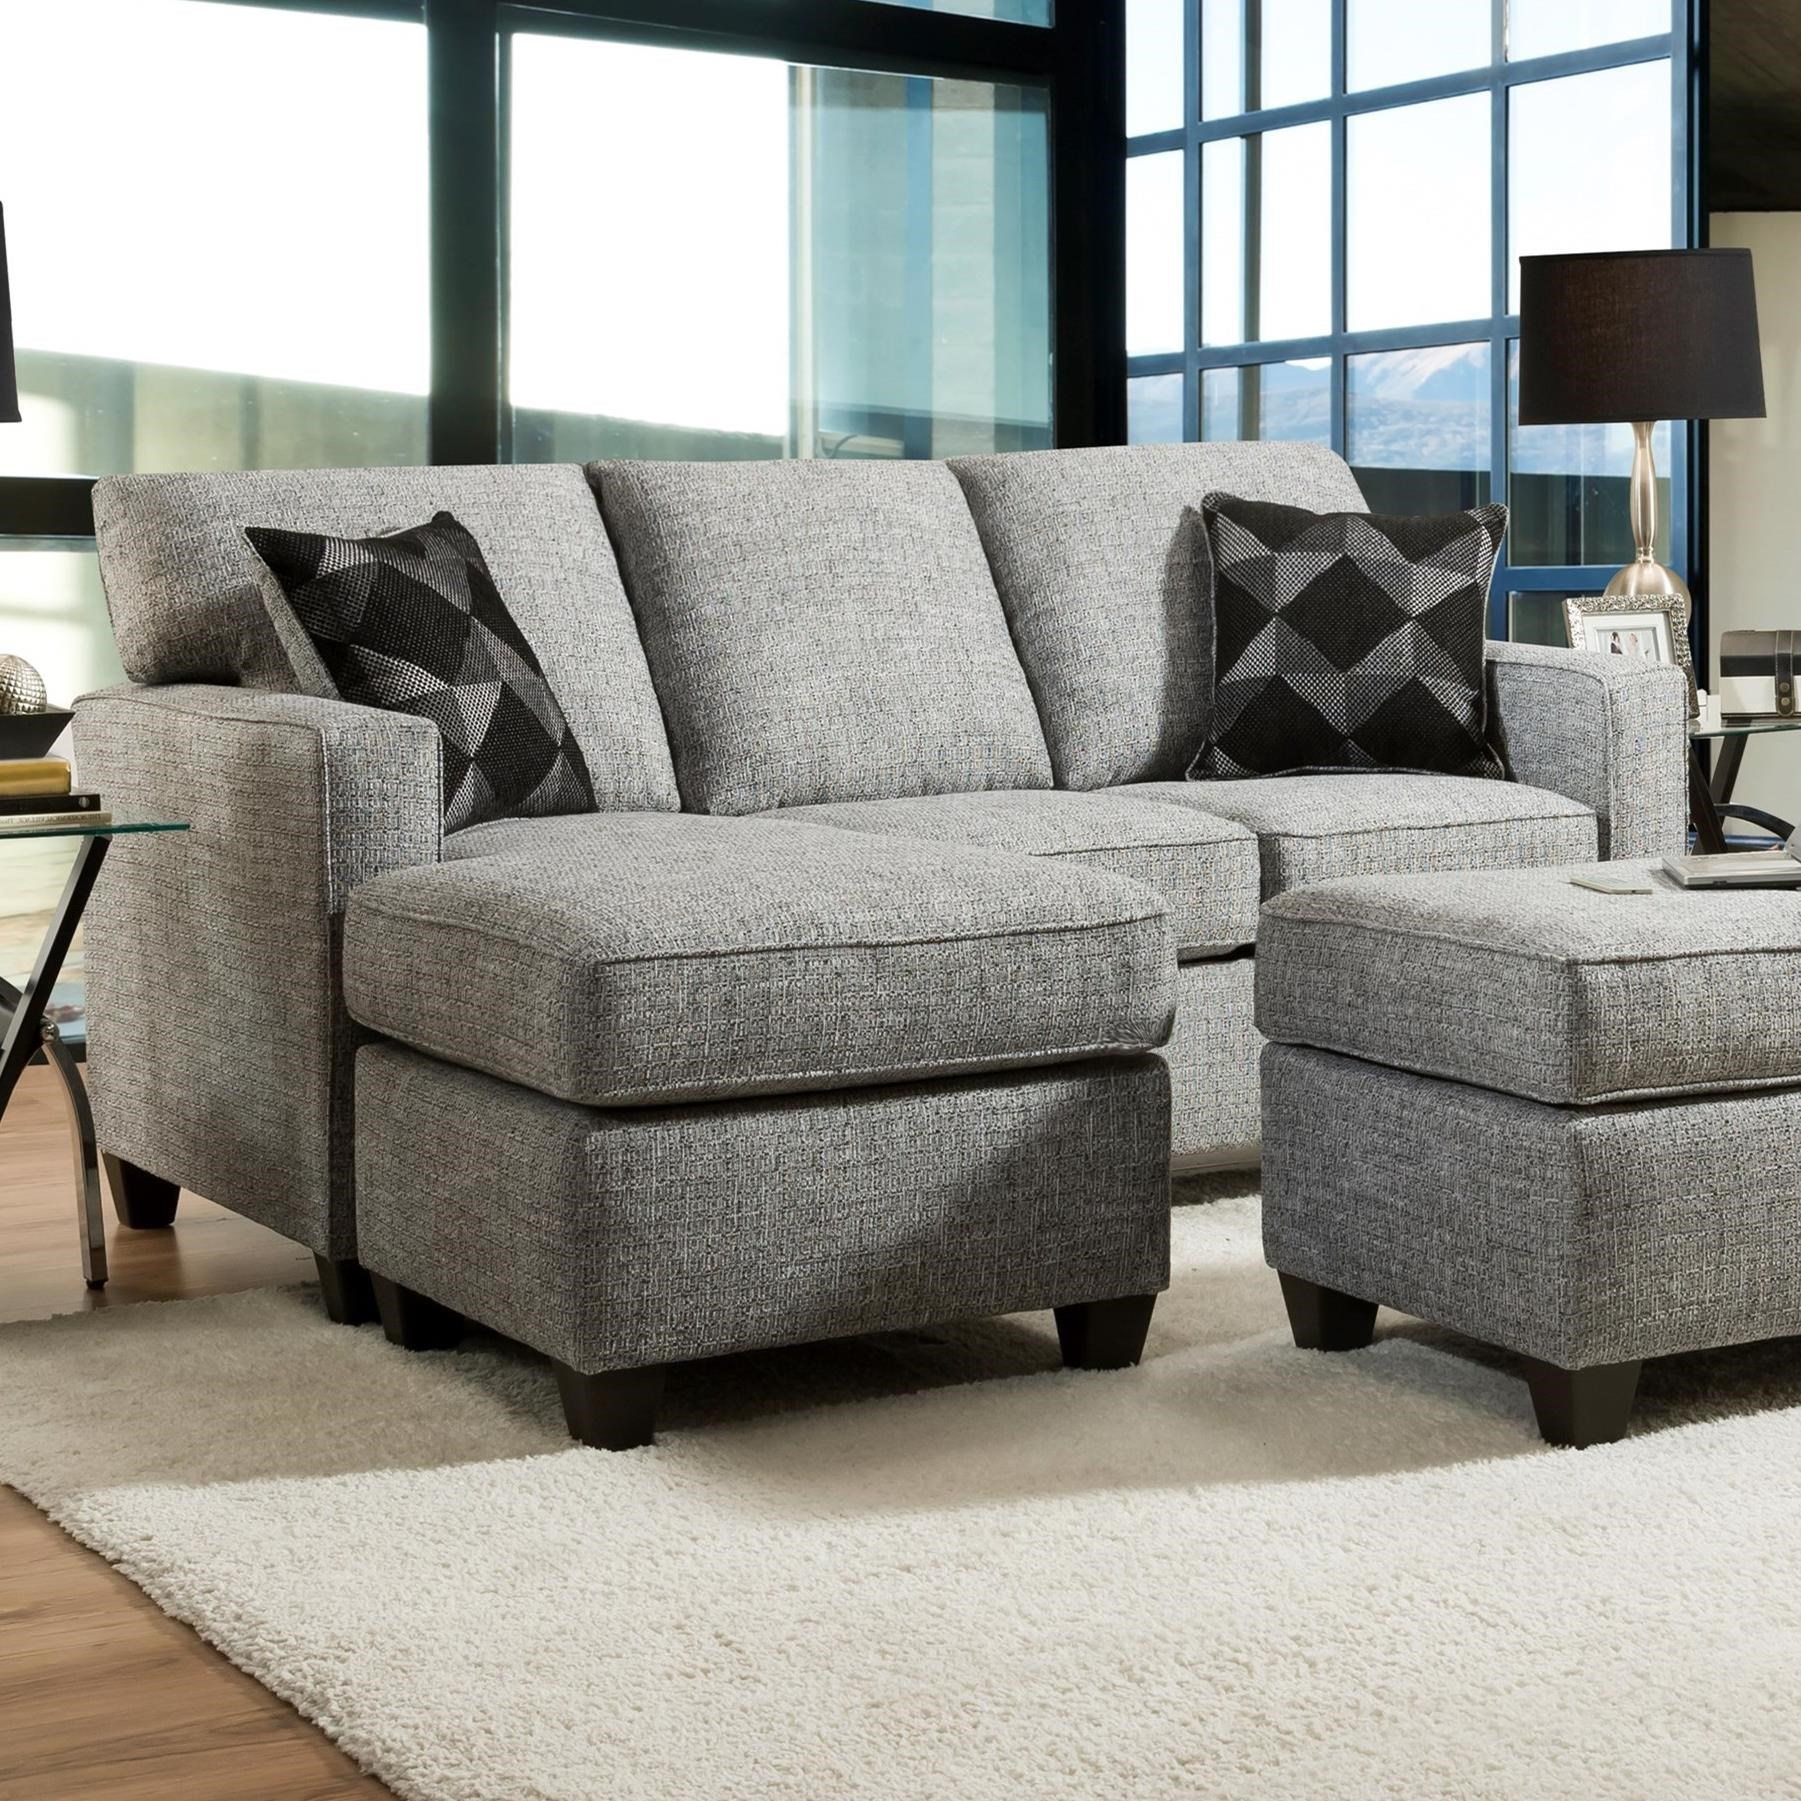 3660 Sofa Chaise by Peak Living at Prime Brothers Furniture